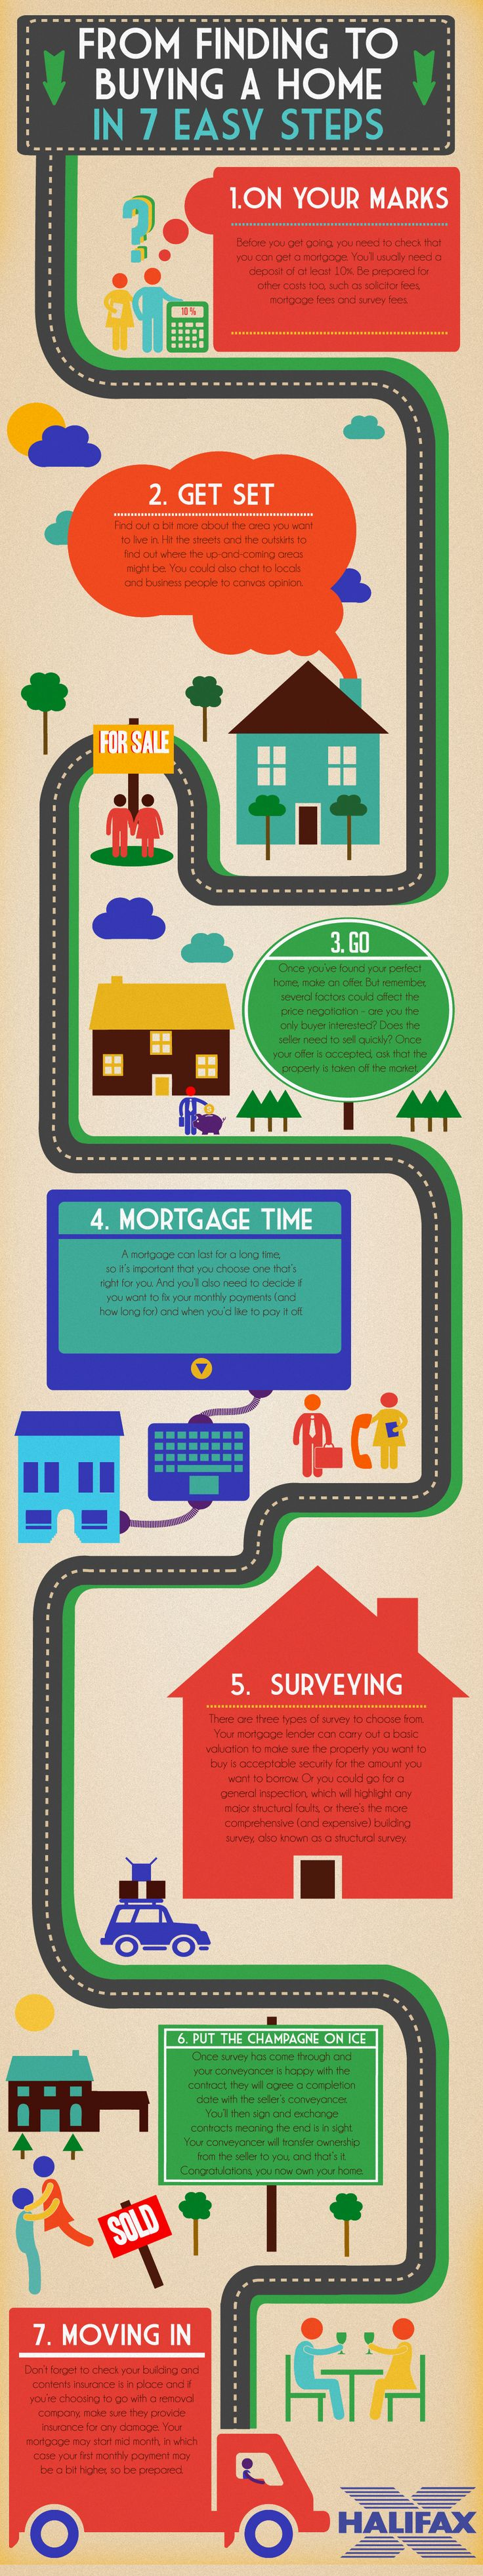 The 7 steps to home buying' infographic, brought to you by Halifax, features useful home buying hints and tips.  The infographic works well with their new free Home Finder app which makes finding a home easier. The app combines property search facilities, mortgage affordability calculators, local area information and property buyers' guides.